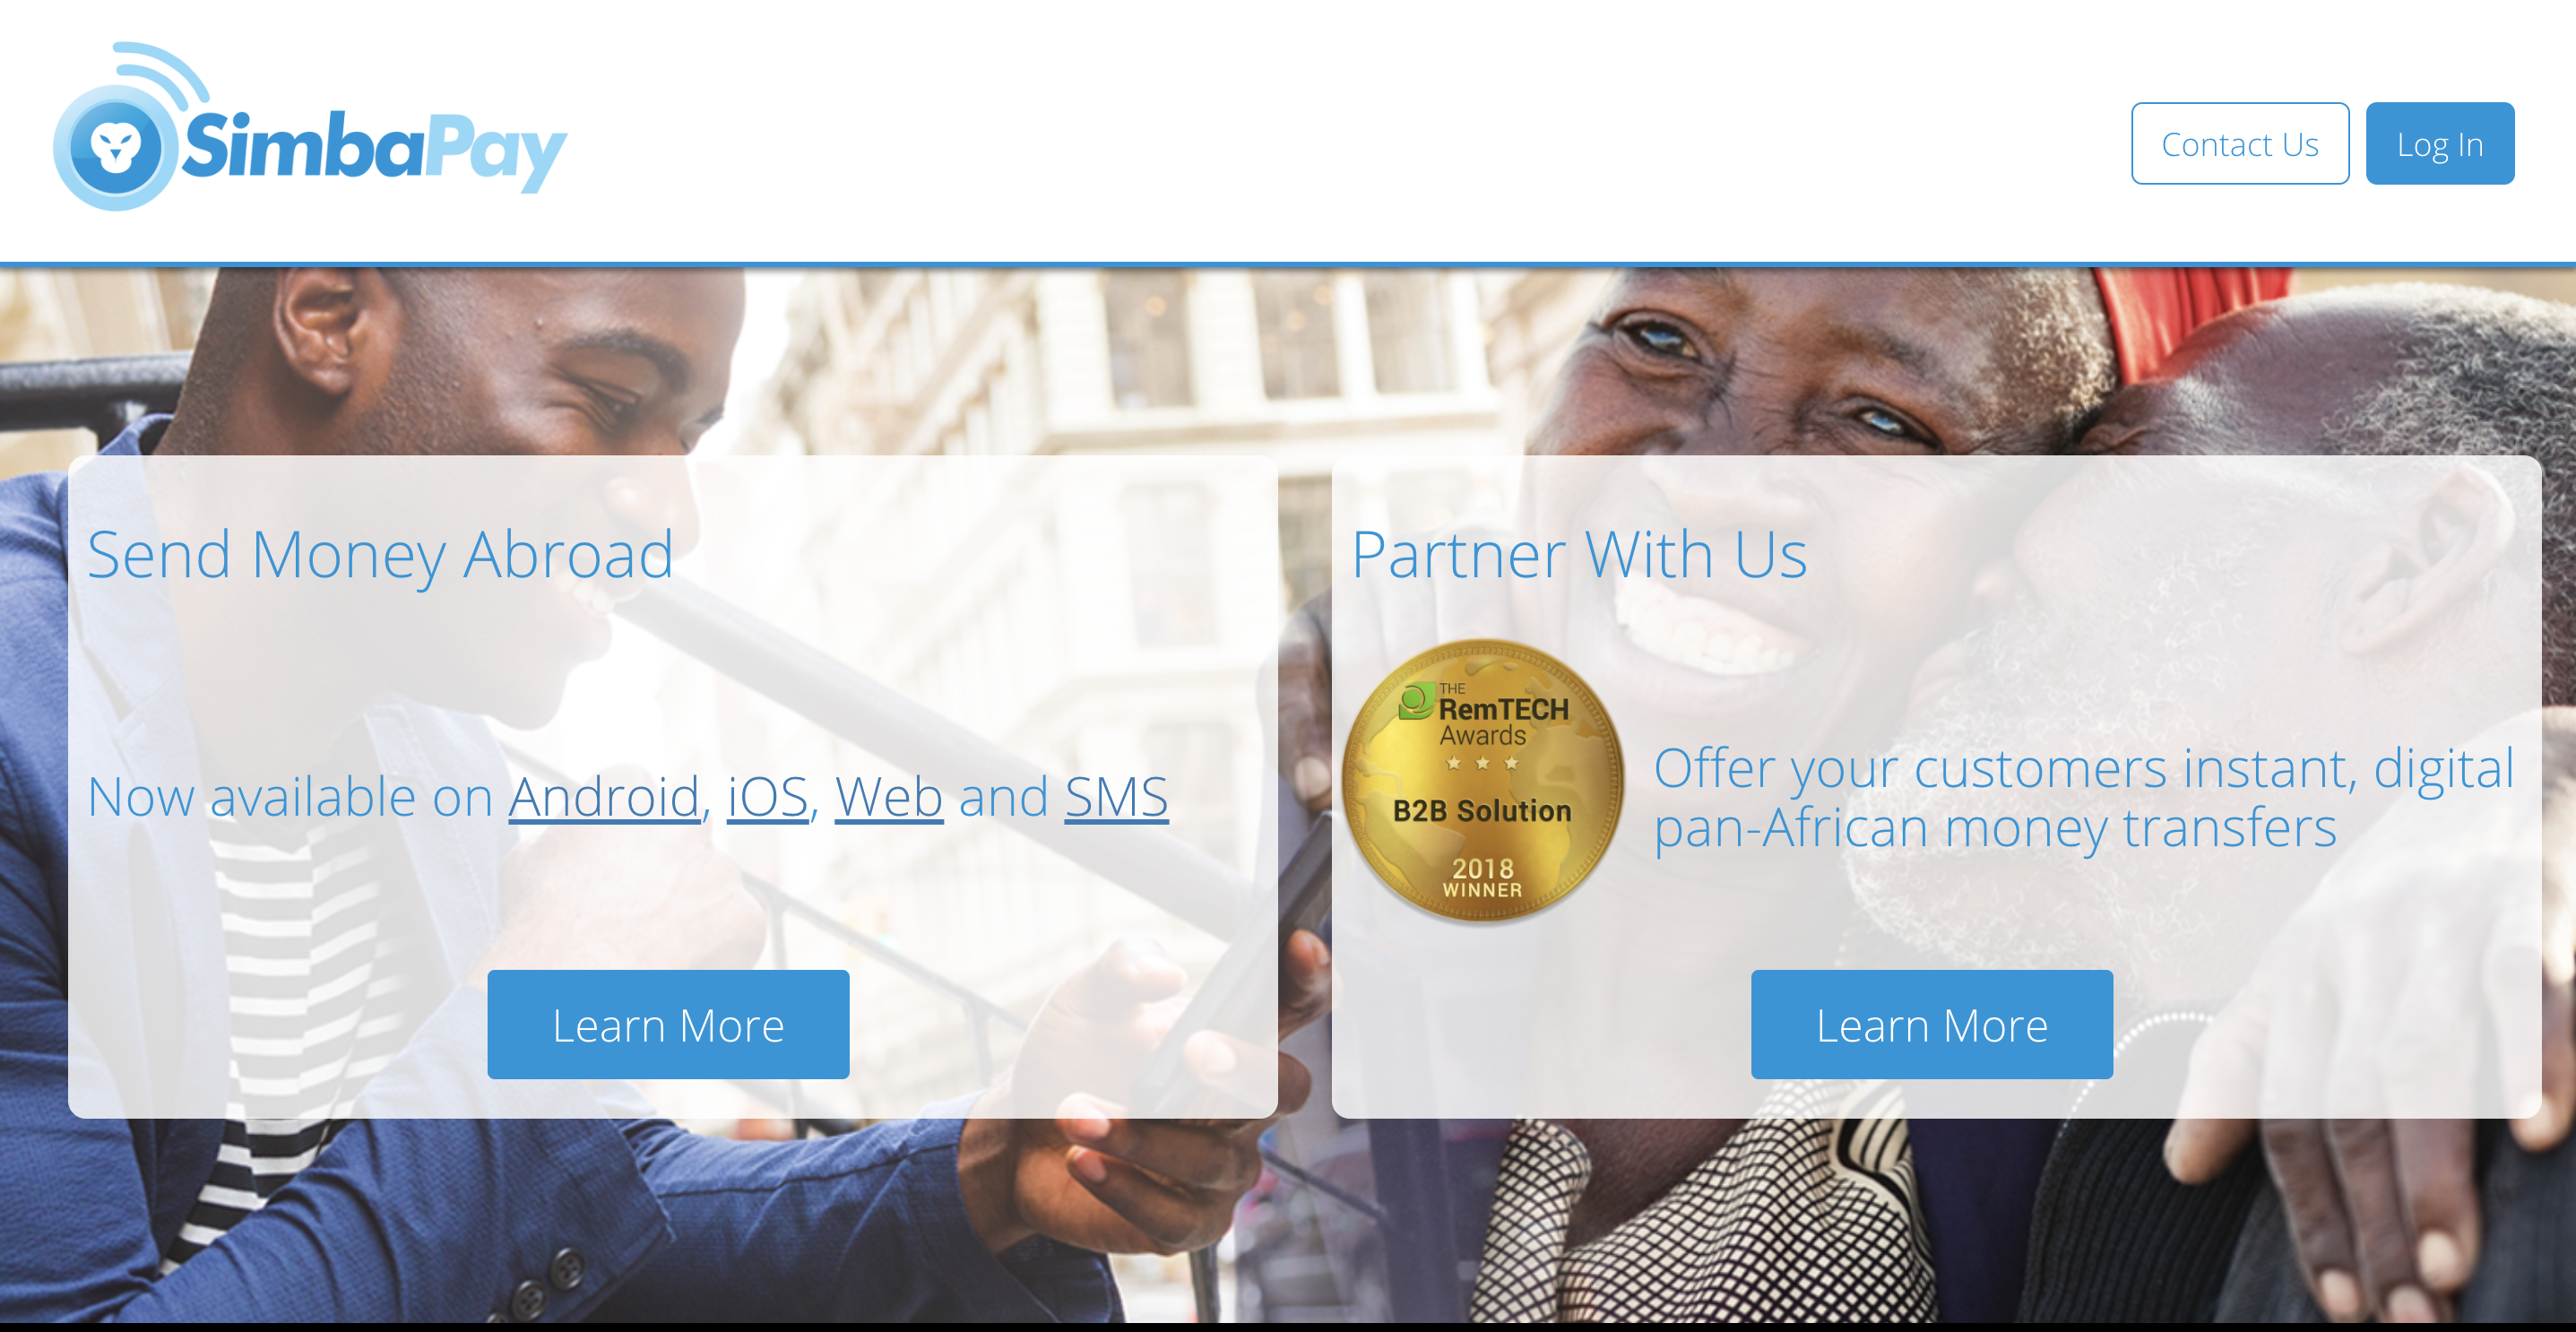 Africa Roundup: Terragon's Asia acquisition, Twiga Foods' $10M raise, SimbaPay's China payment service Screen Shot 2018 12 09 at 9